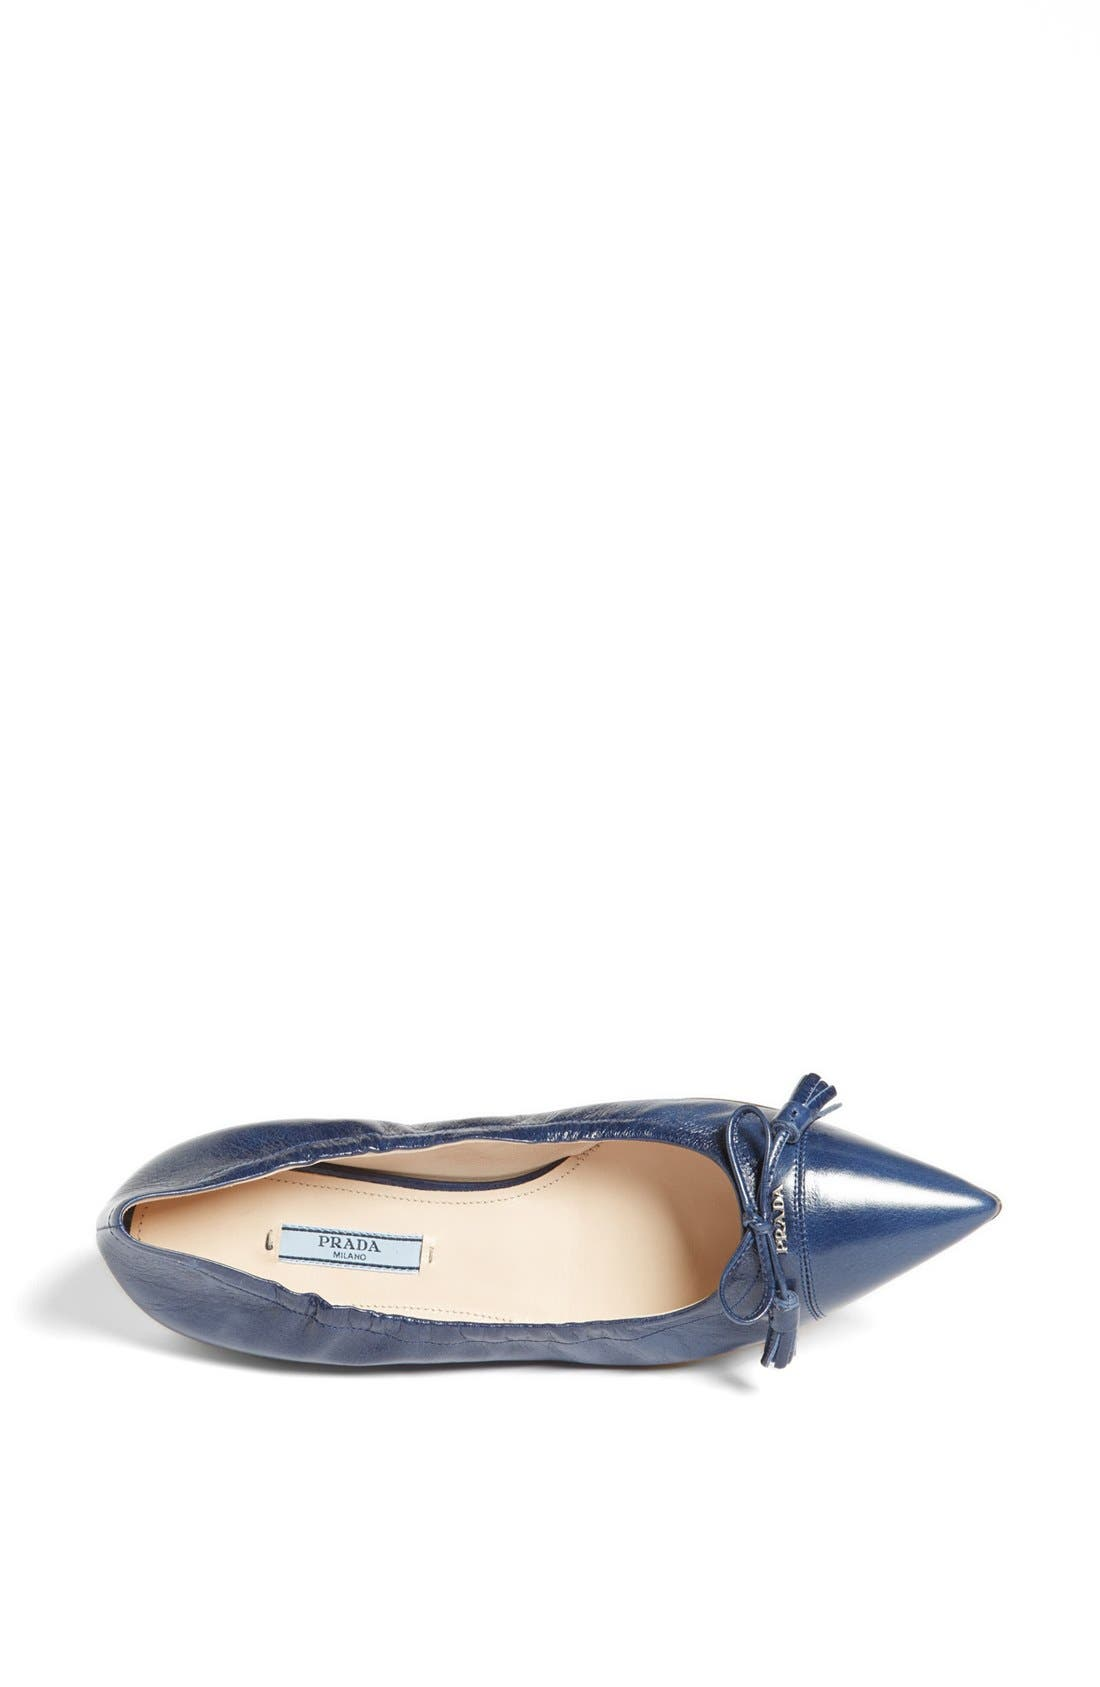 Alternate Image 3  - Prada Pointy Toe Ballerina Flat